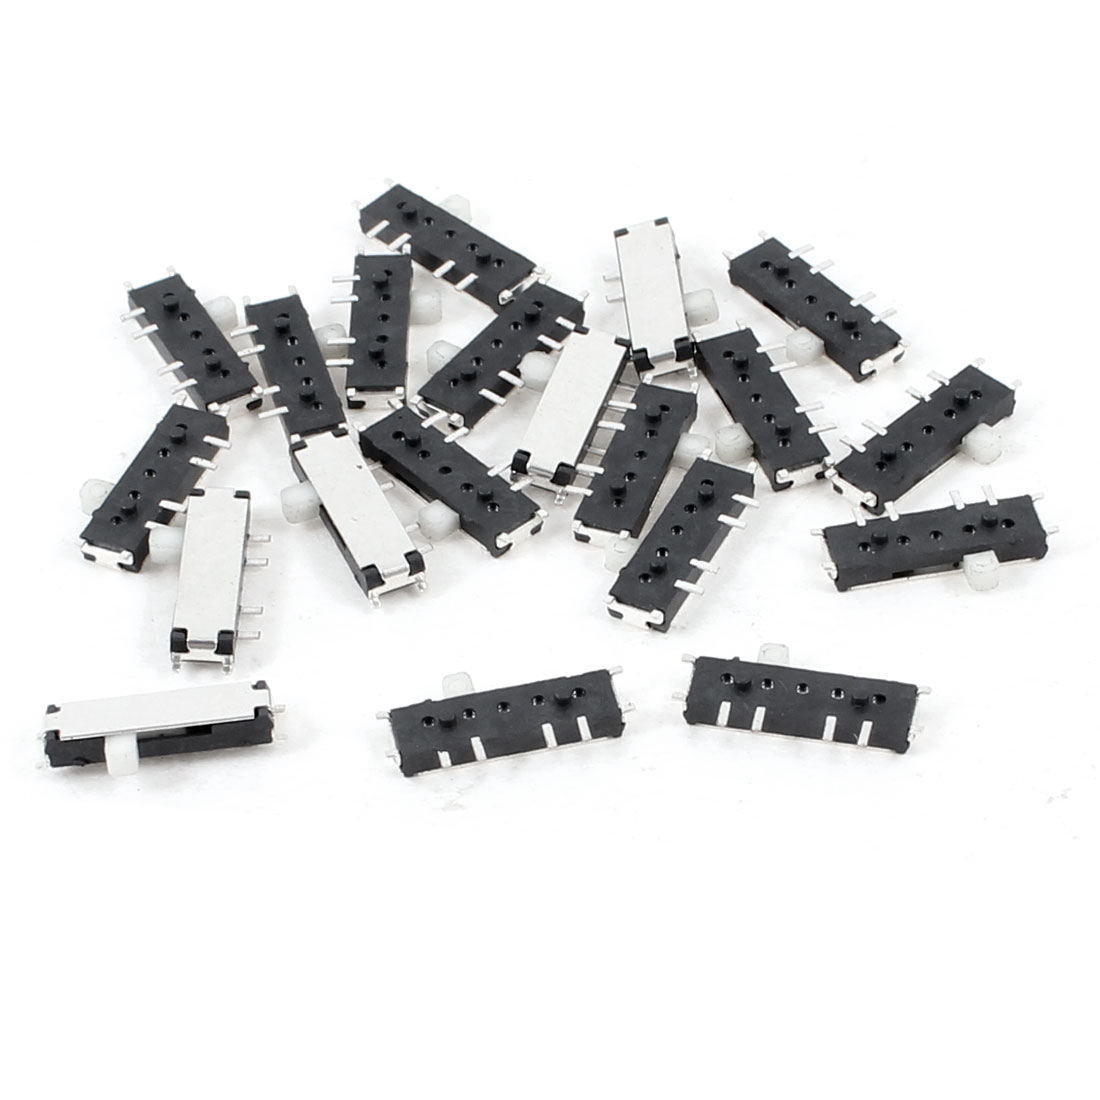 20 Pcs 3 Position 8 Pin DPDT Horizontal Mini SMD SMT Slide Switch 10mm x 3mm